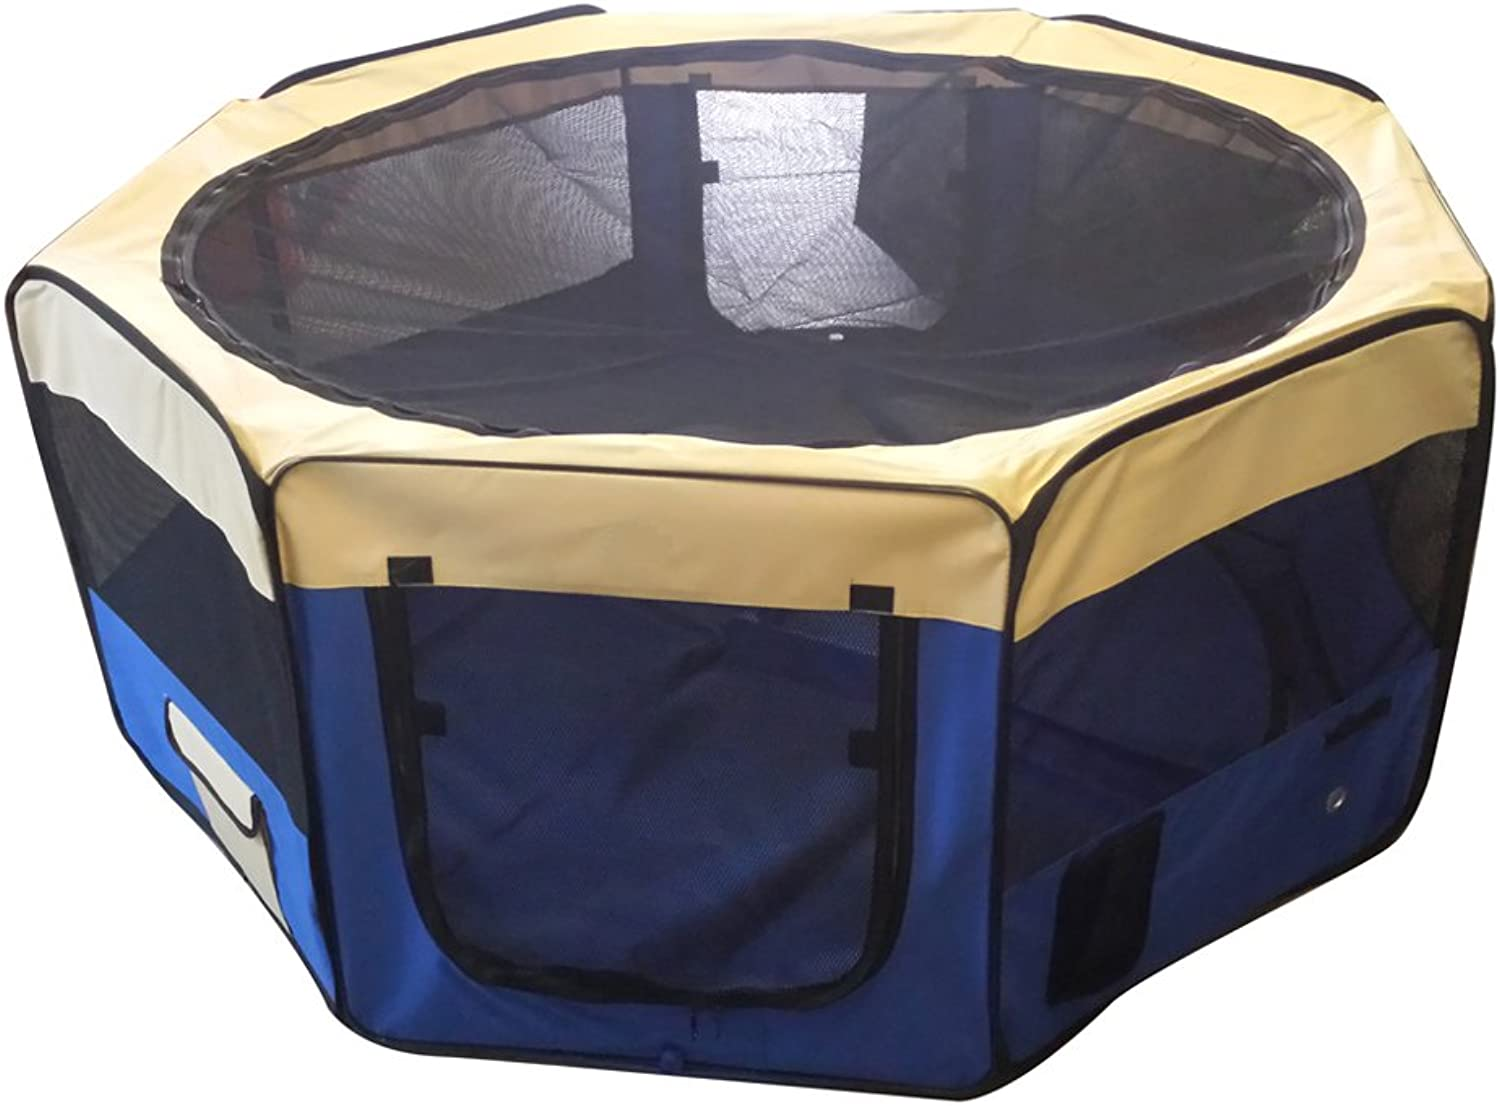 Cool Runners 34inch x 34inch x 24inch Indoor Outdoor Portable Soft Side Pet Play Pen Kennel for Dogs or Cats (8 Panels)